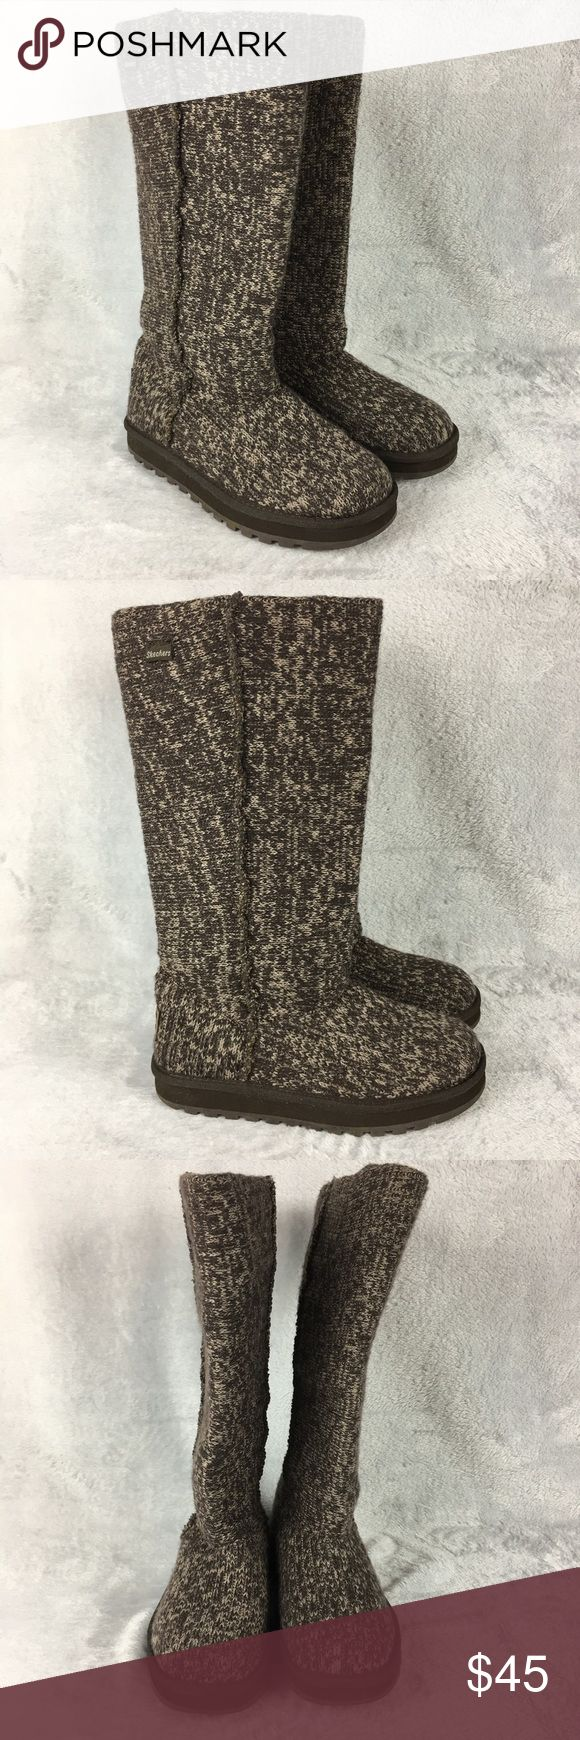 Skechers Winter Boots Weather Sweater Foldable SKECHERS CHOCOLATE SWEATER BOOTS #46987  Size: 7.5M, Womens  Color: Brown Woven  Condition: Preowned, 100% Authentic Skechers Shoes Winter & Rain Boots